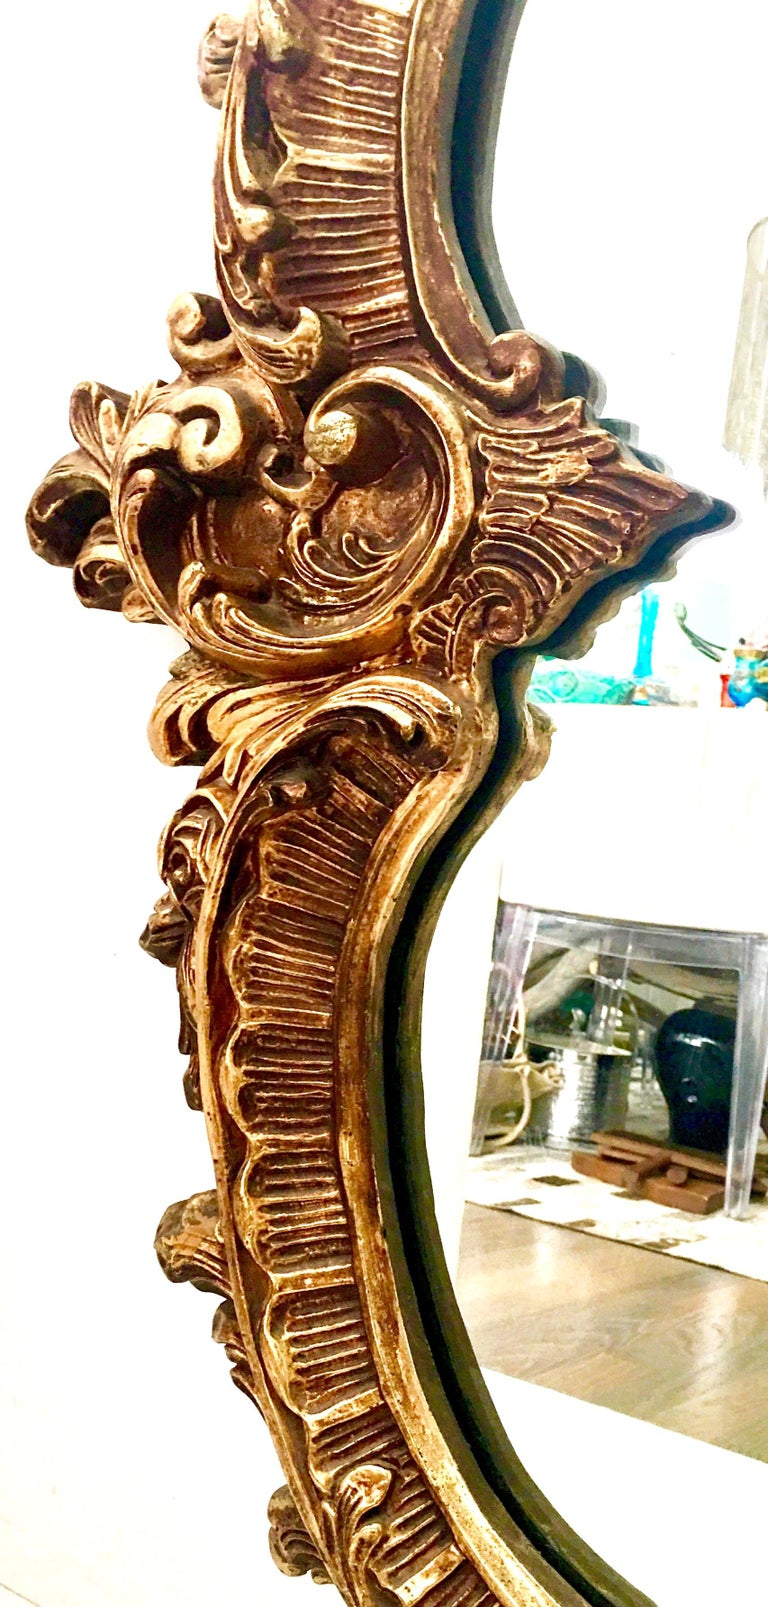 20th Century Monumental French Baroque Style Ornate Gold Gilt Mirror For Sale 2